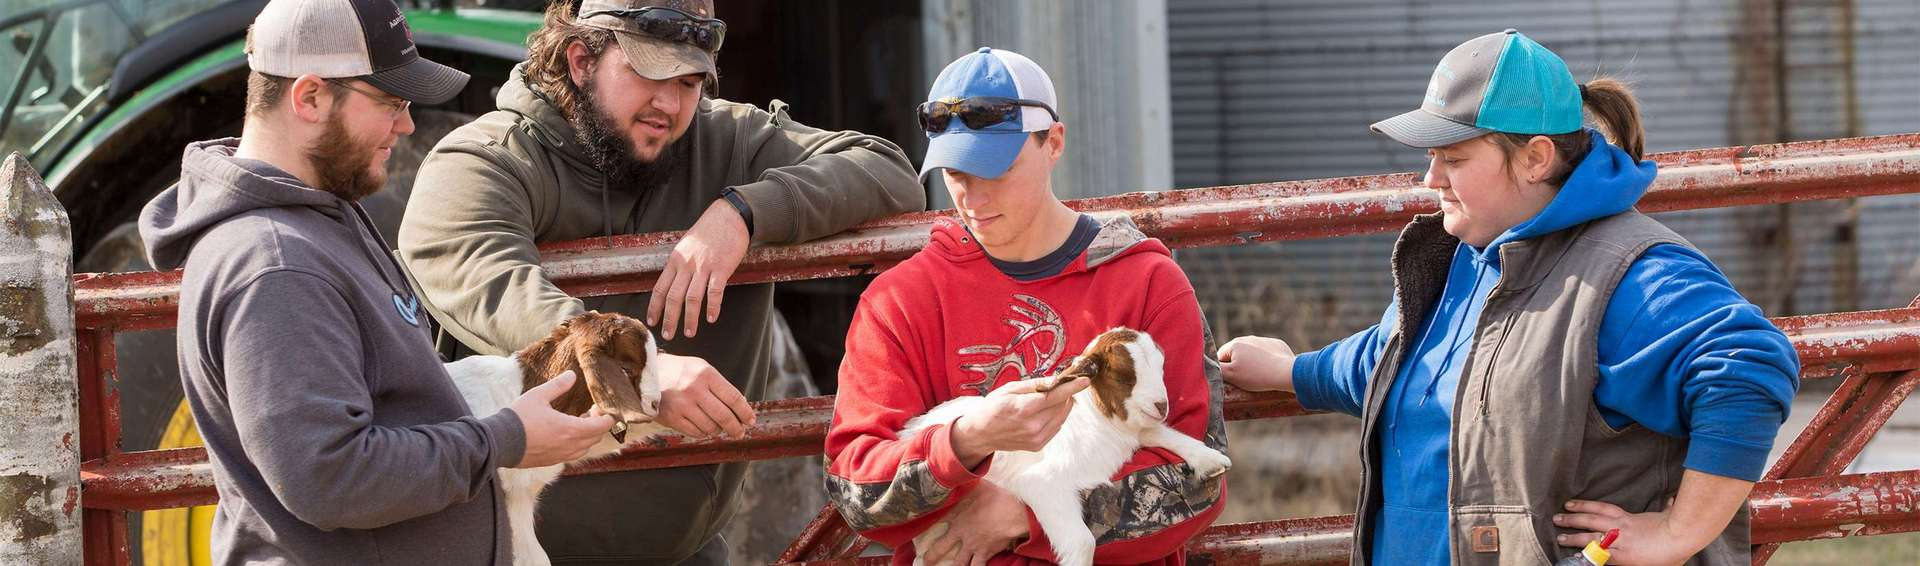 Real-world experience at the UCM Farm